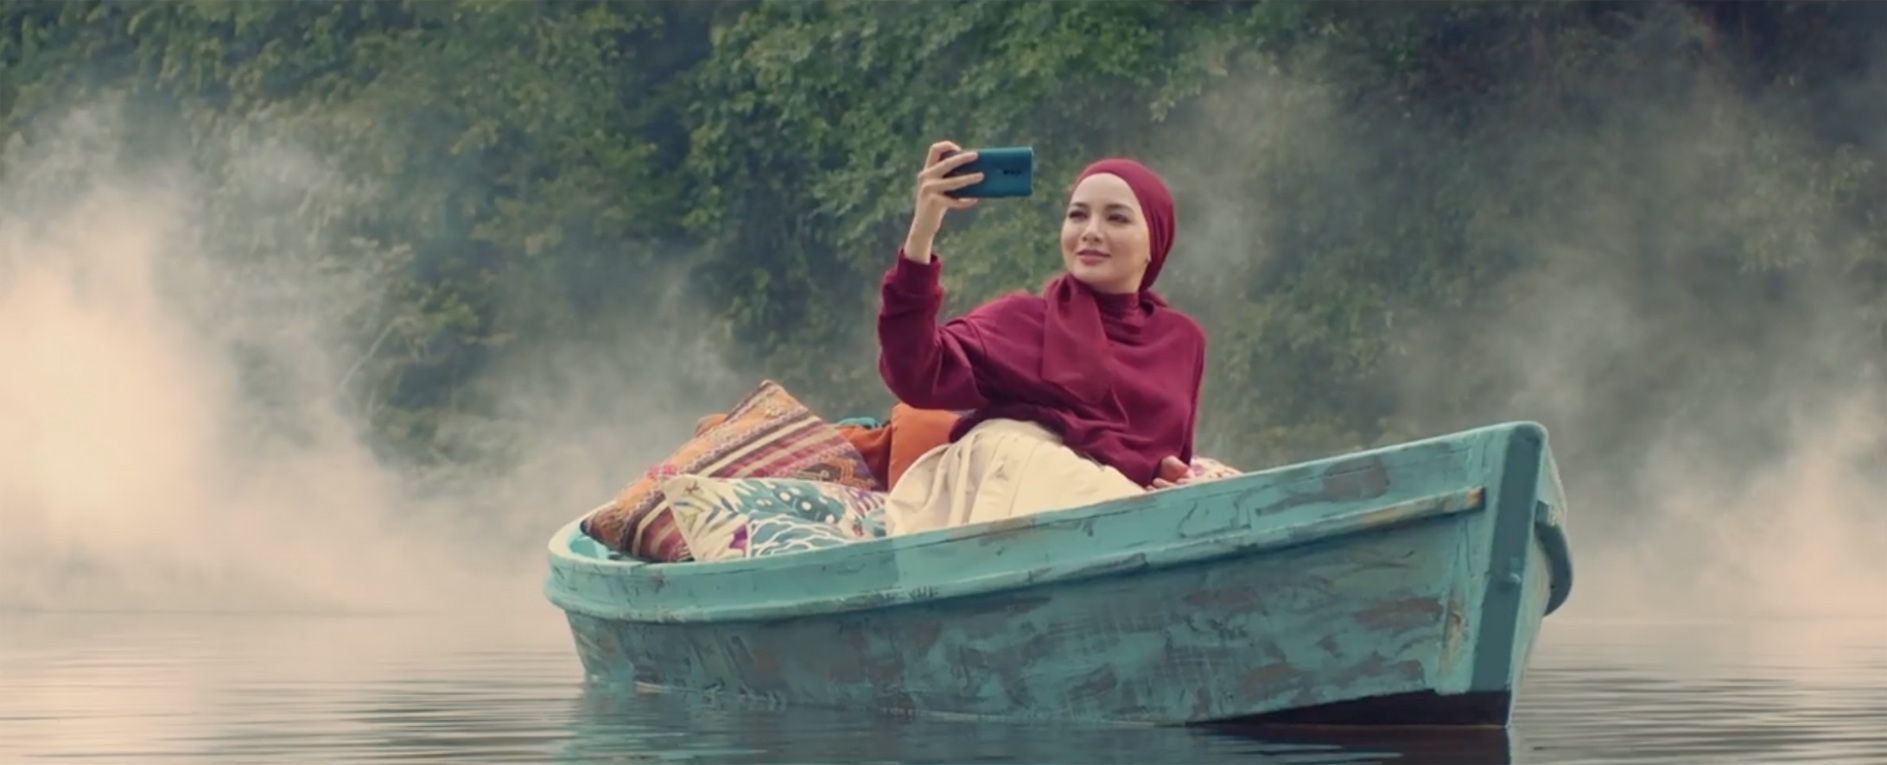 Oppo celebrates finding beauty even in the ordinary with two star-studded narratives created by Director's Think Tank + Grey Worldwide Malaysia